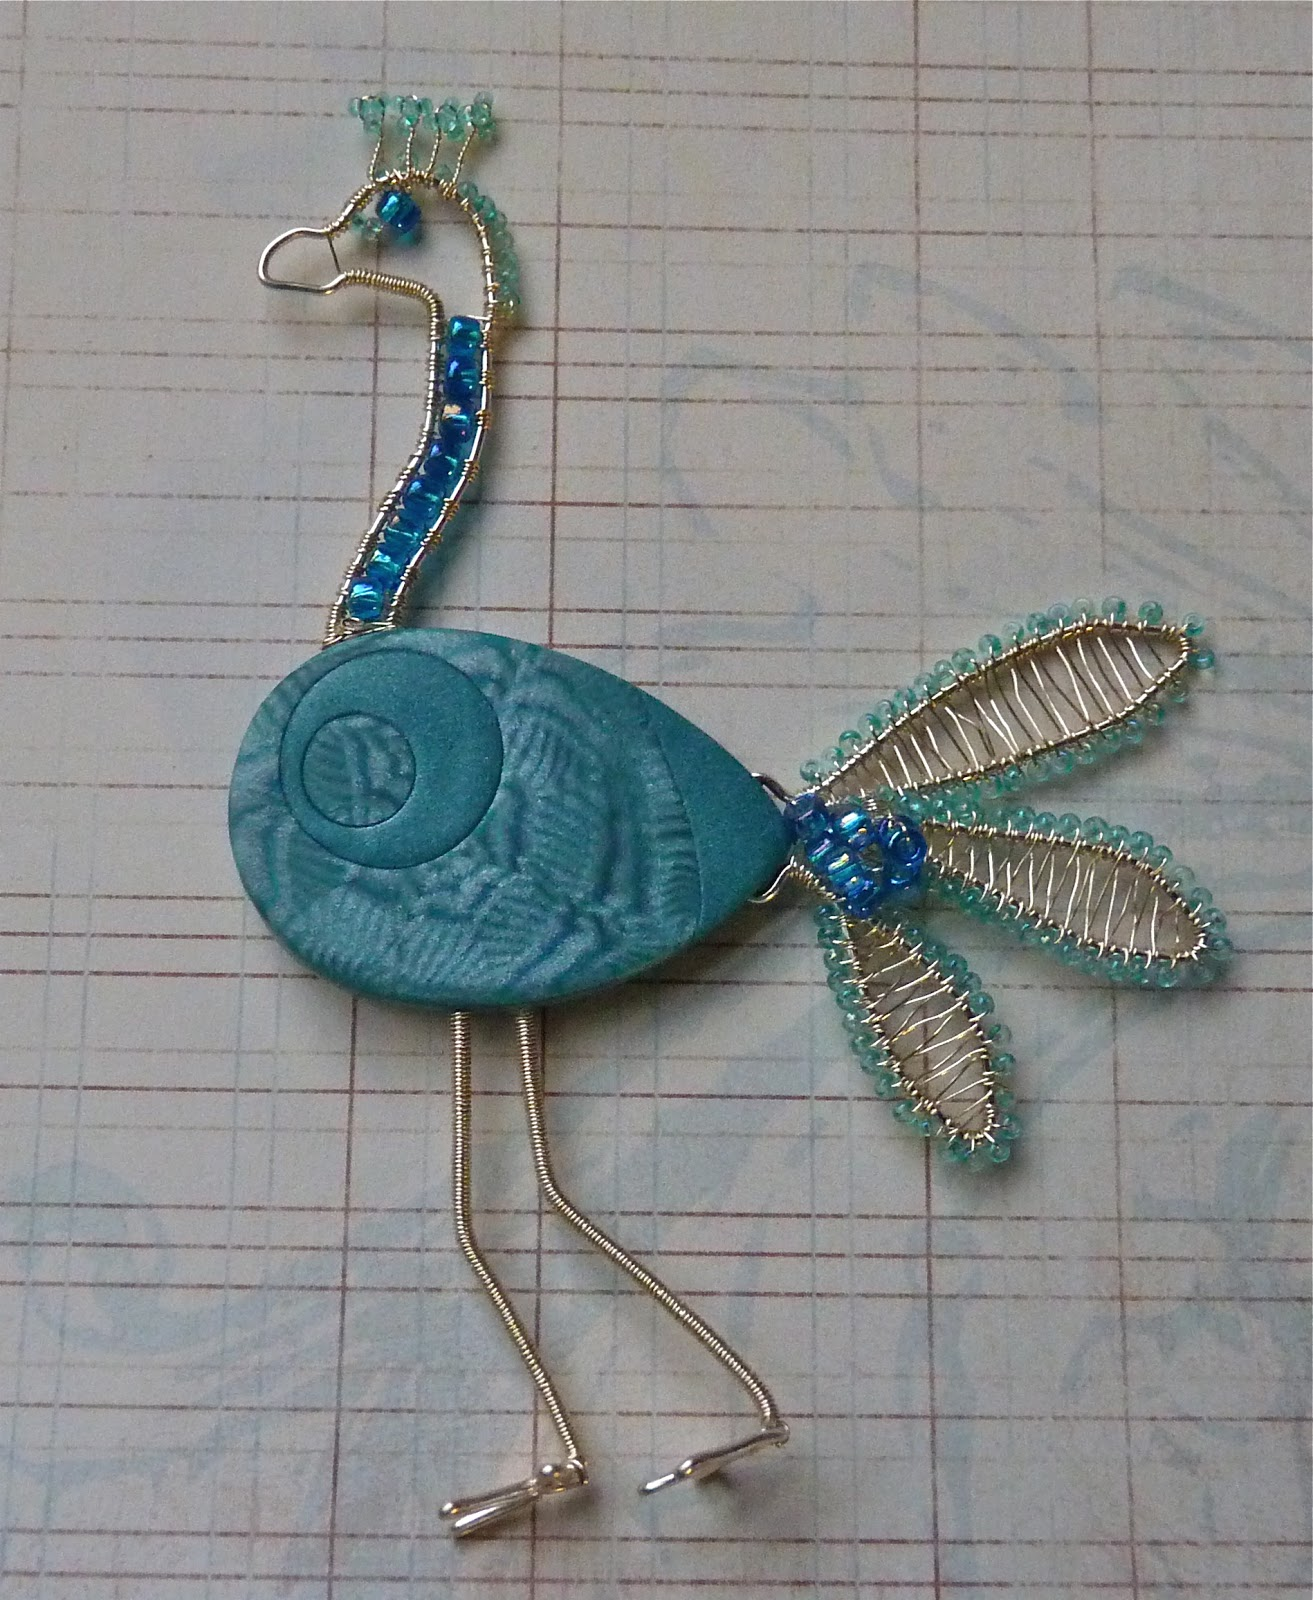 Knightwork: Playing with Clay: Adding Wire & Beads to Polymer Clay